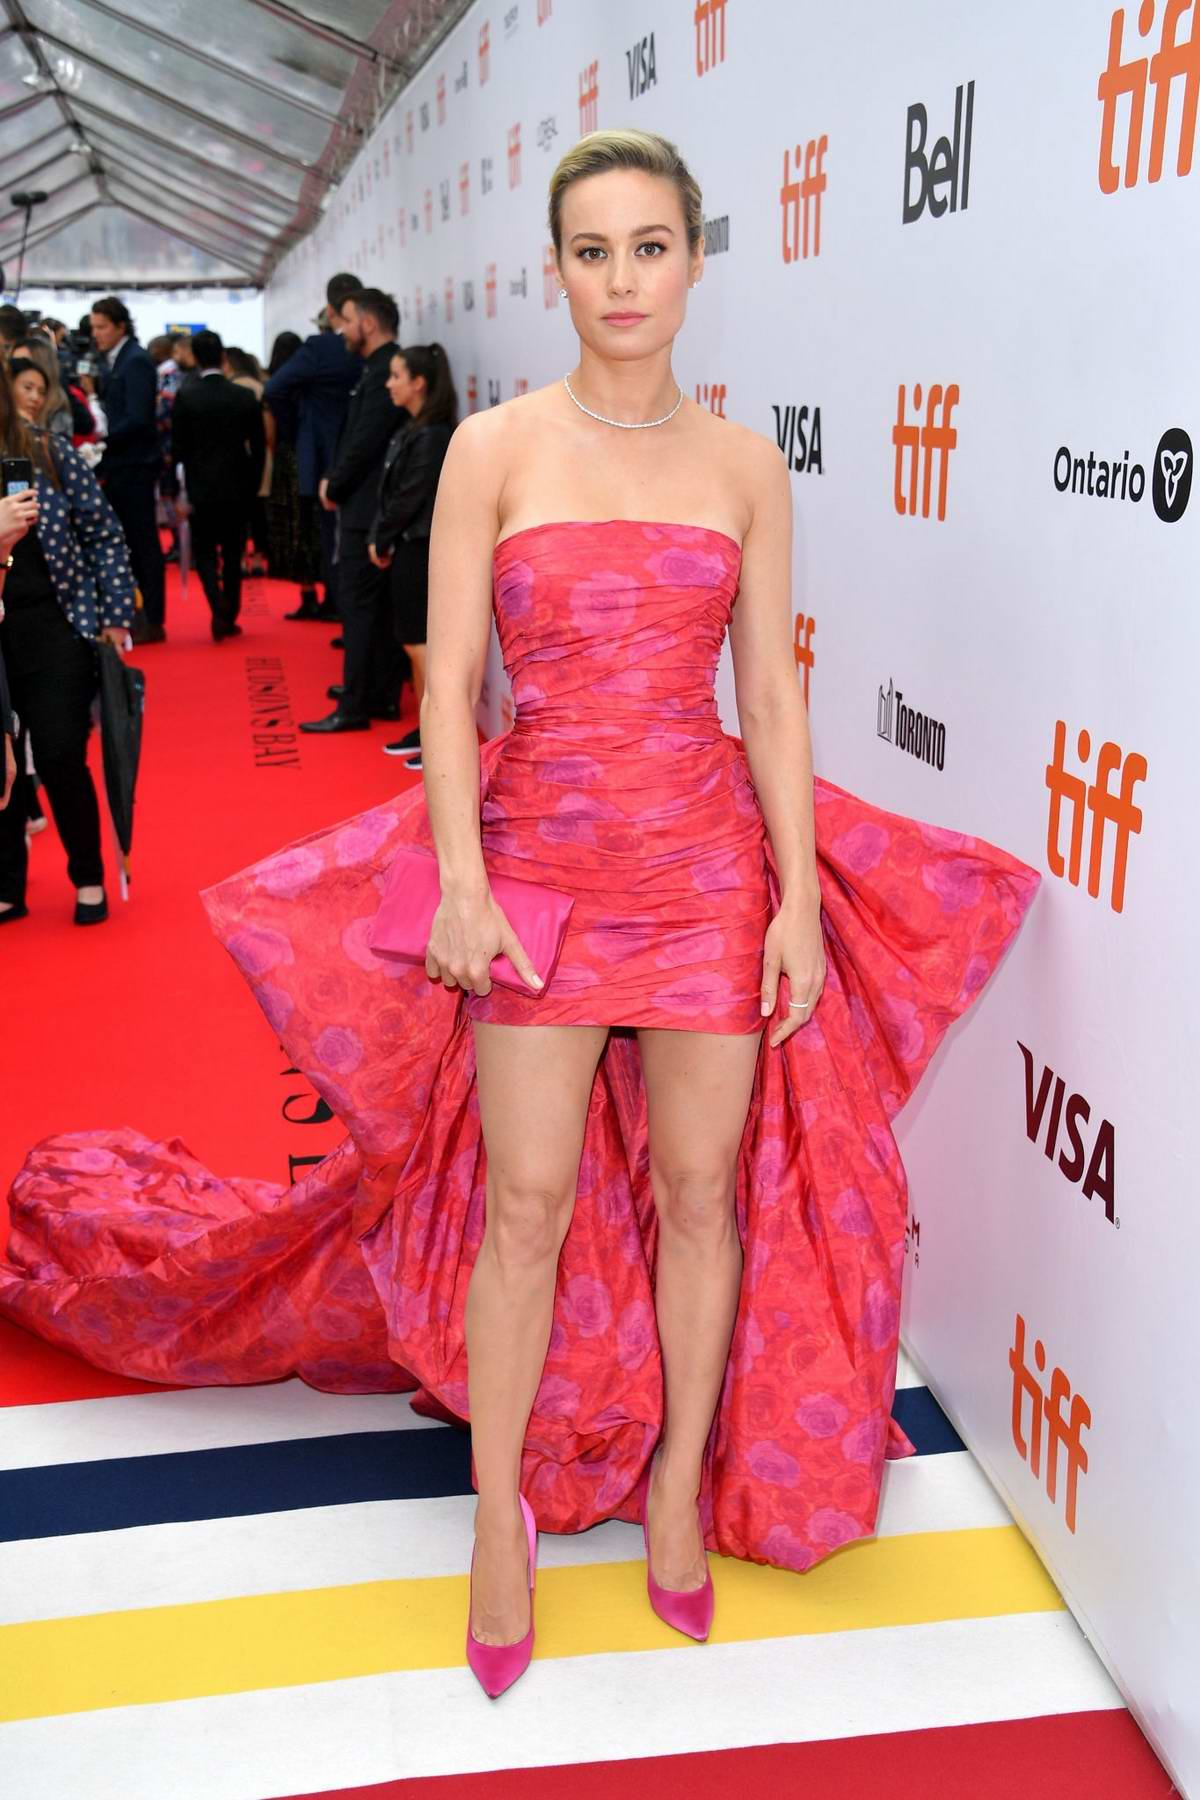 Brie Larson attends the premiere of 'Just Mercy' during the 2019 Toronto International Film Festival in Toronto, Canada